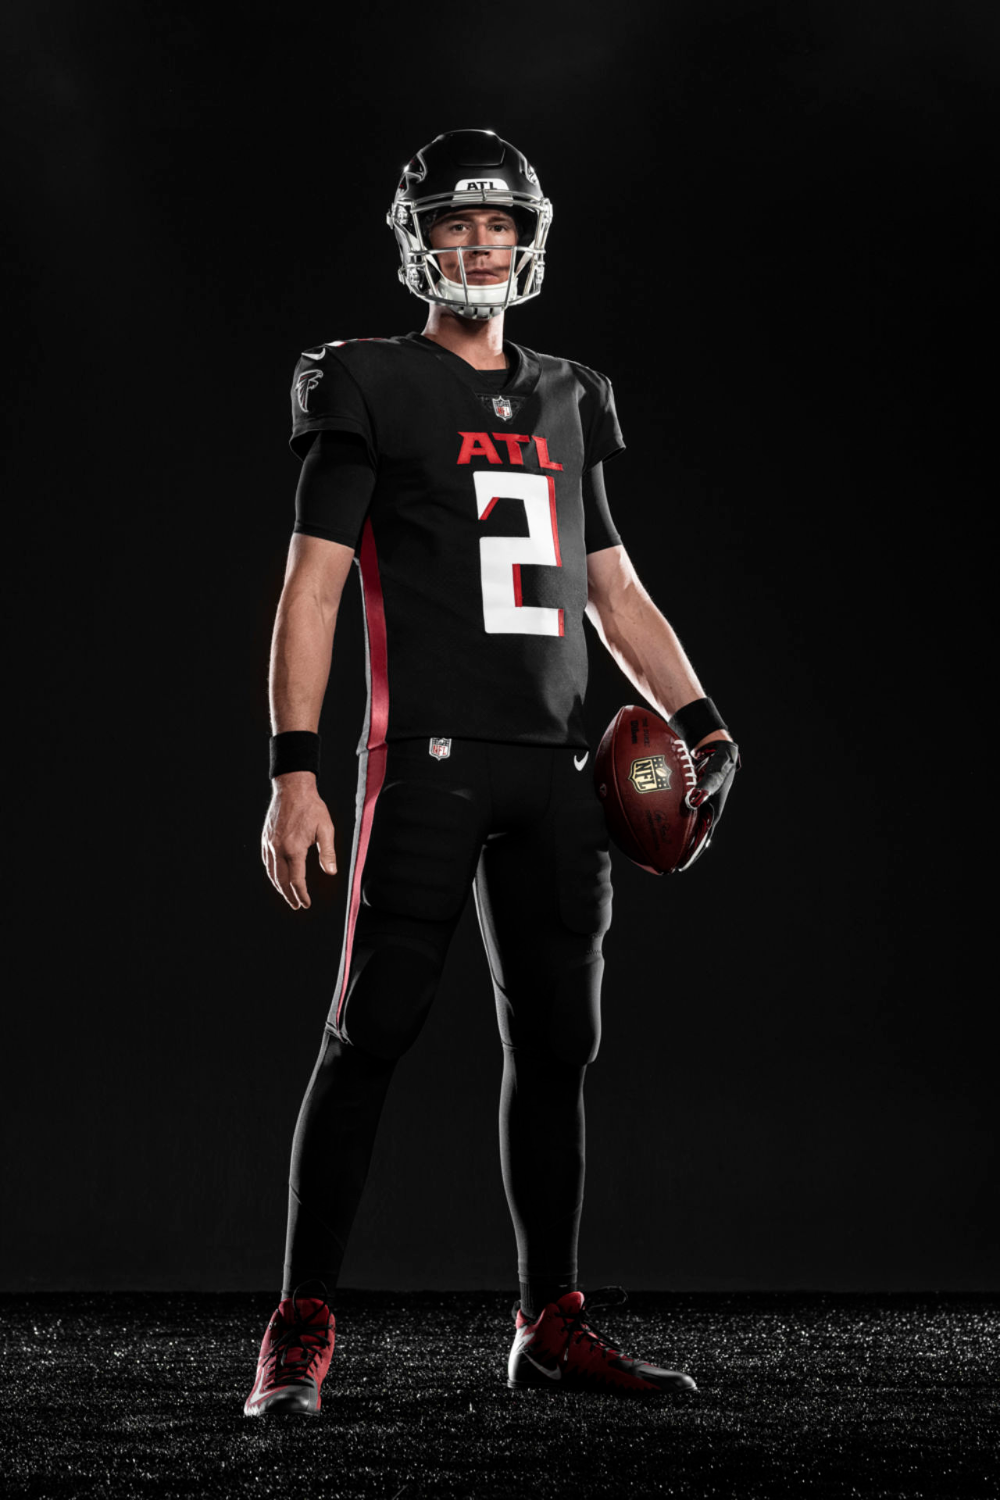 Atlanta Falcons New Uniforms Revealed In 2020 Atlanta Falcons Atlanta Atlanta Falcons Matt Ryan